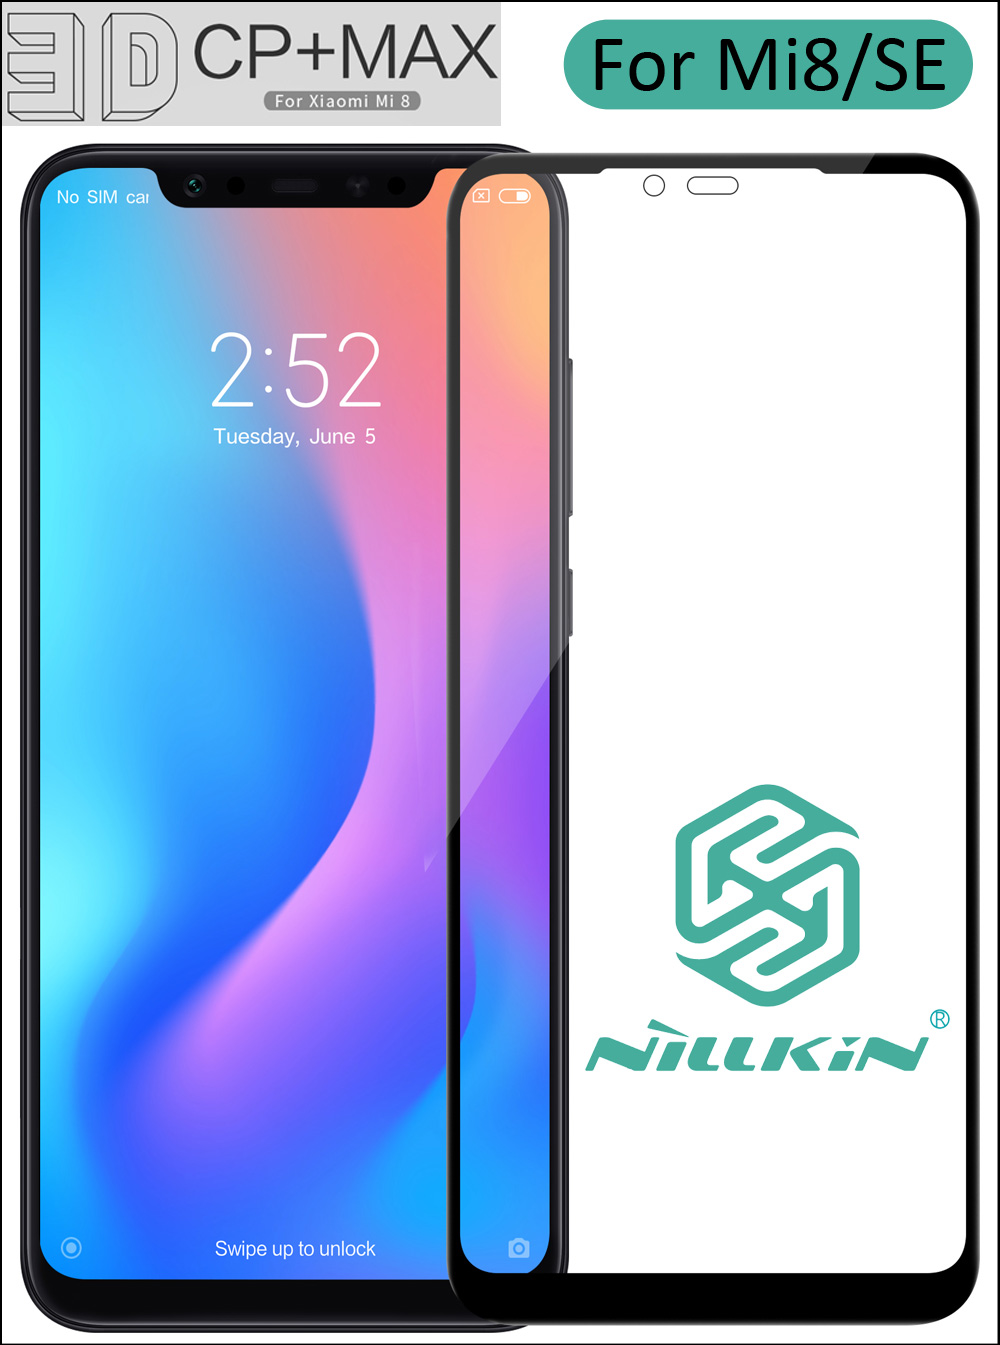 Nillkin 3D CP+ Max Tempered Glass For Xiaomi Mi8 Mi 8 SE Full Screen Cover Curved Protective oleophobic